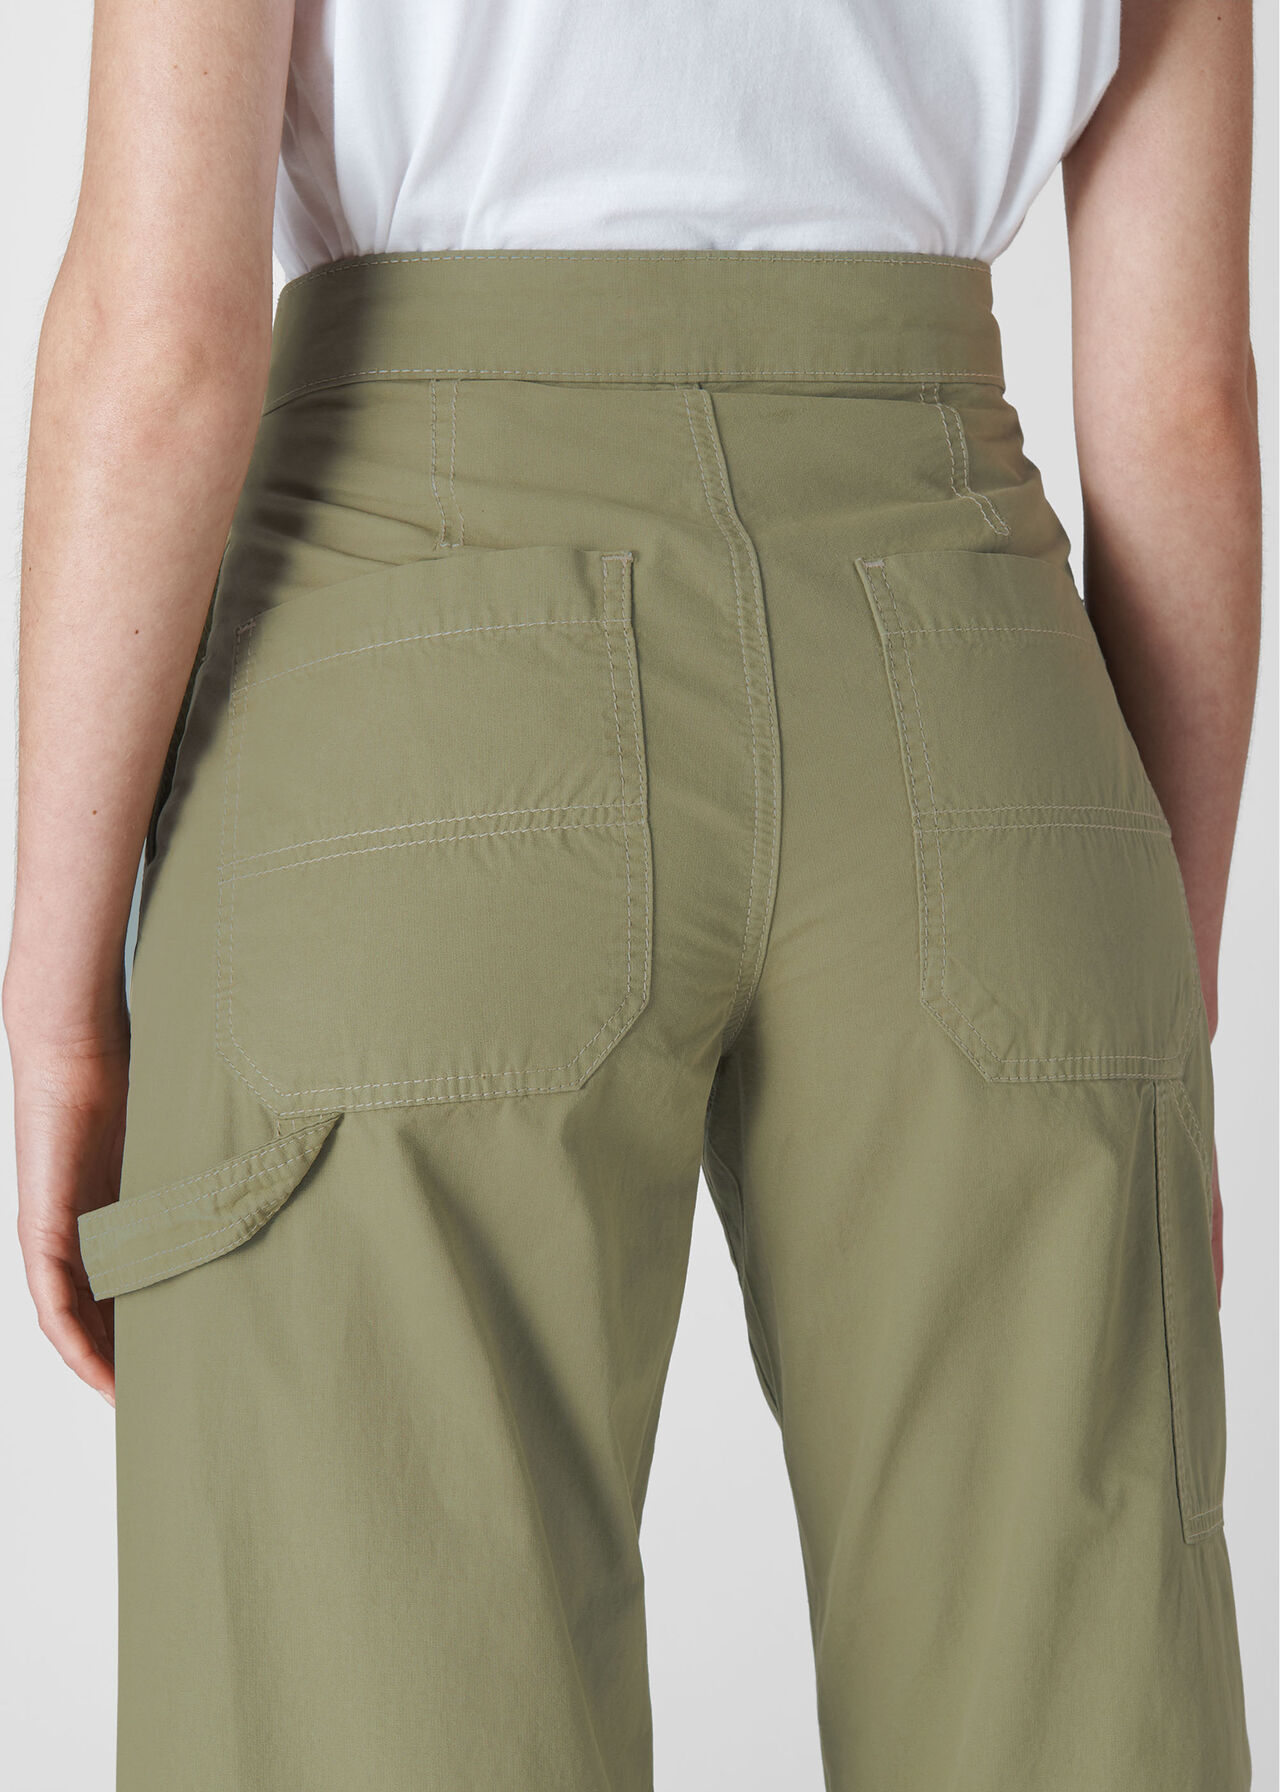 Cameron Casual Trouser Pale Green